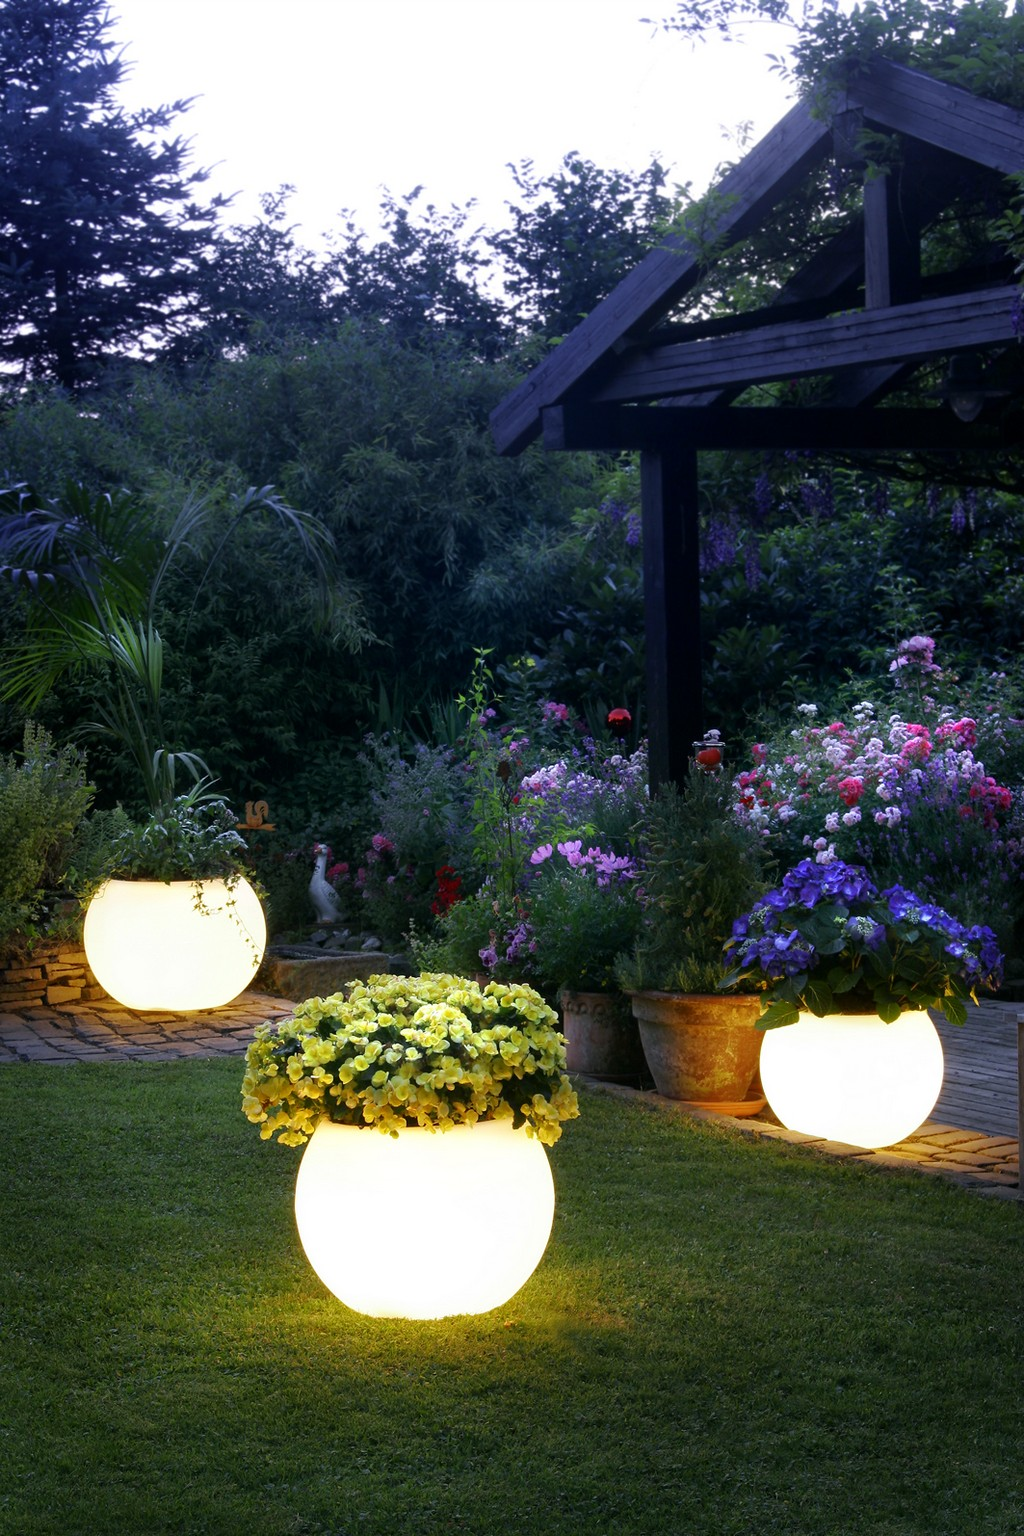 garden lights - lighting plant pots